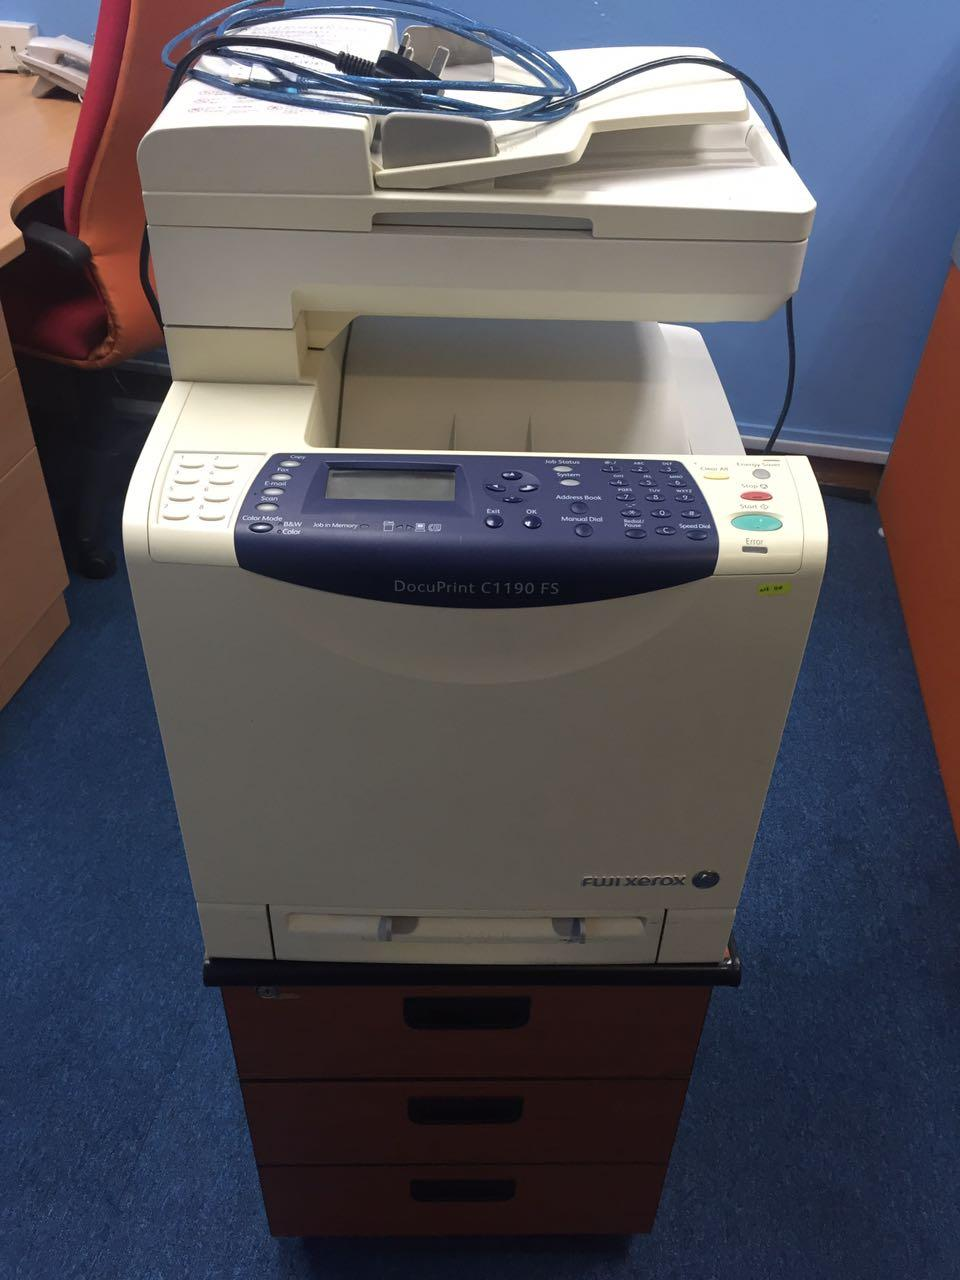 C1190FS PRINTER DRIVERS WINDOWS 7